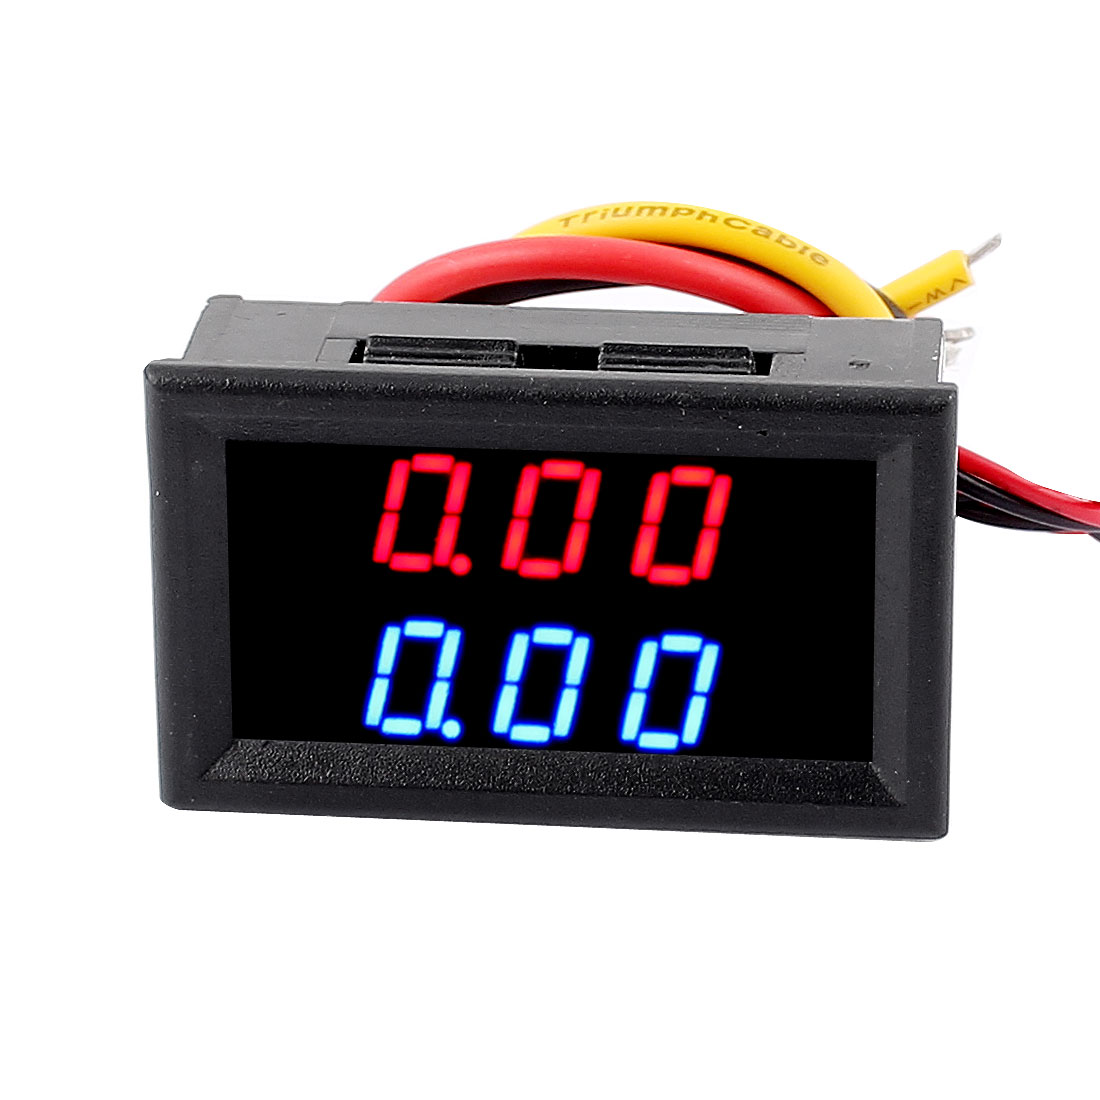 DC 0-100V 10A Panel Red Blue Dual LED Digital Ammeter Voltmeter Volt